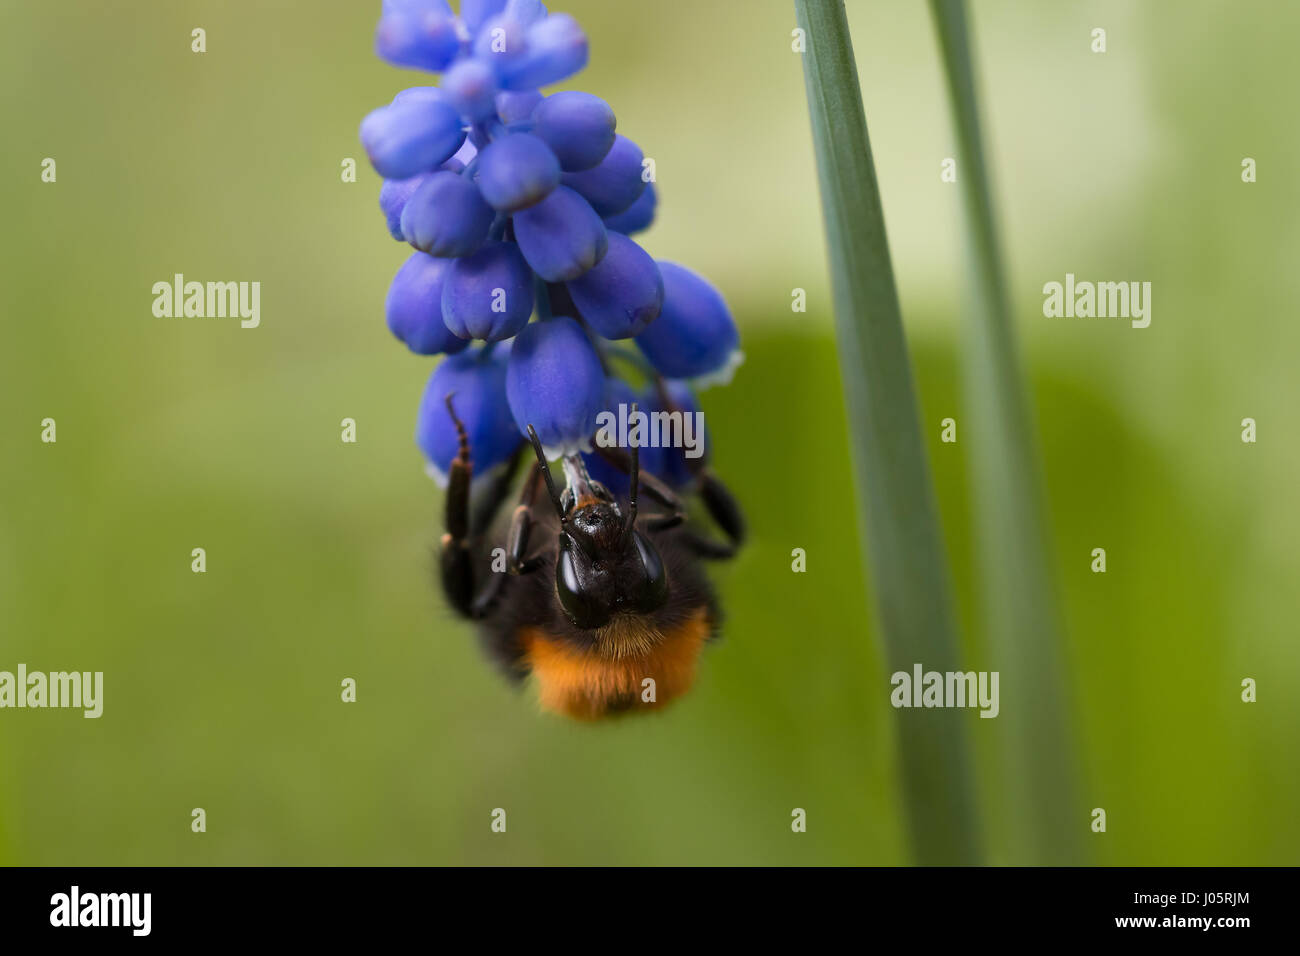 Frontal close up of a bumble bee (Genus Bombus) hanging upside down on a muscari flower (Muscari neglectum) - Stock Image